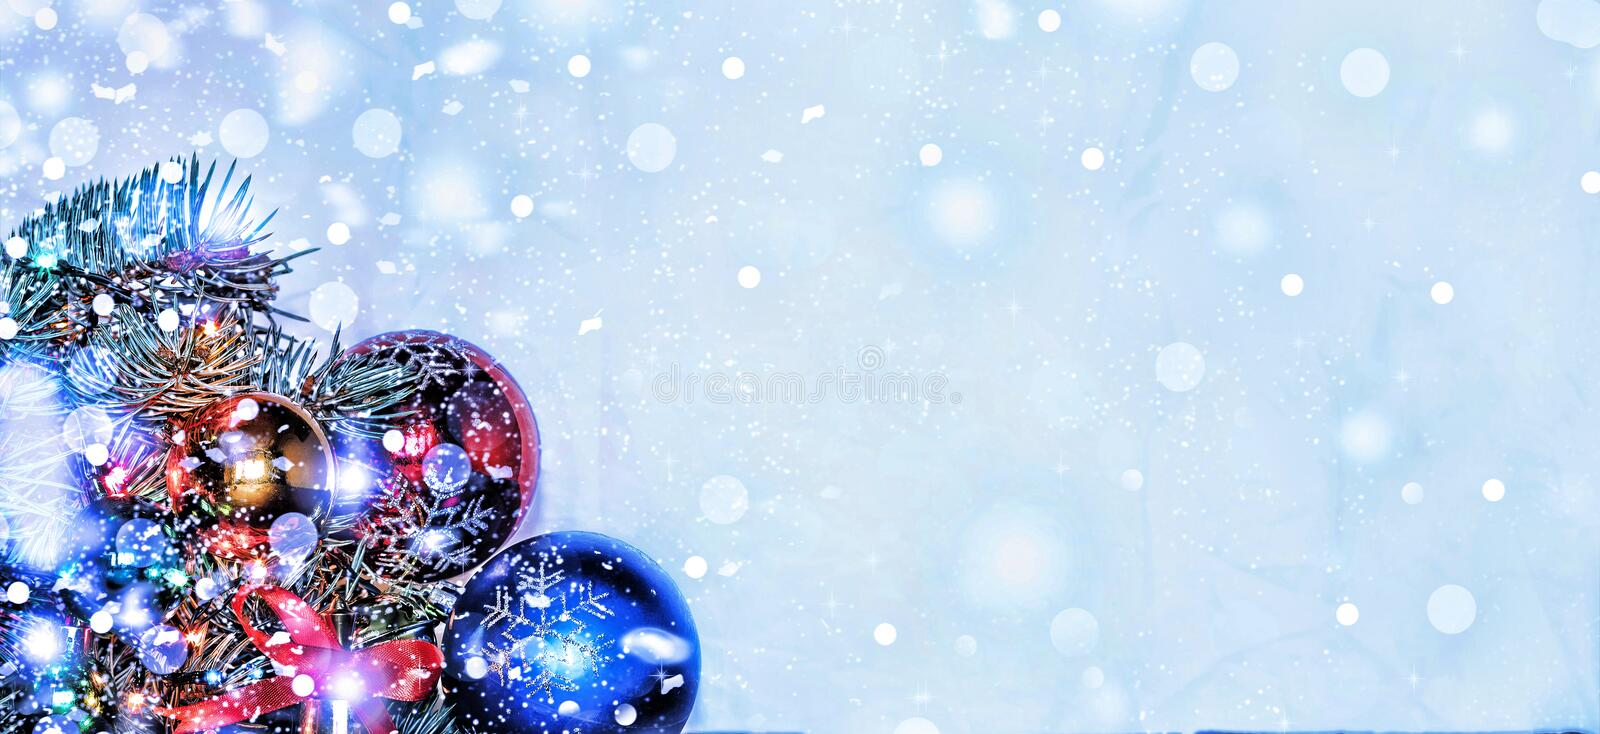 New Year, Christmas. Christmas decorations, multi-colored balls and gifts with a Christmas tree on a wooden background with a cop. Christmas decorations, multi royalty free stock images